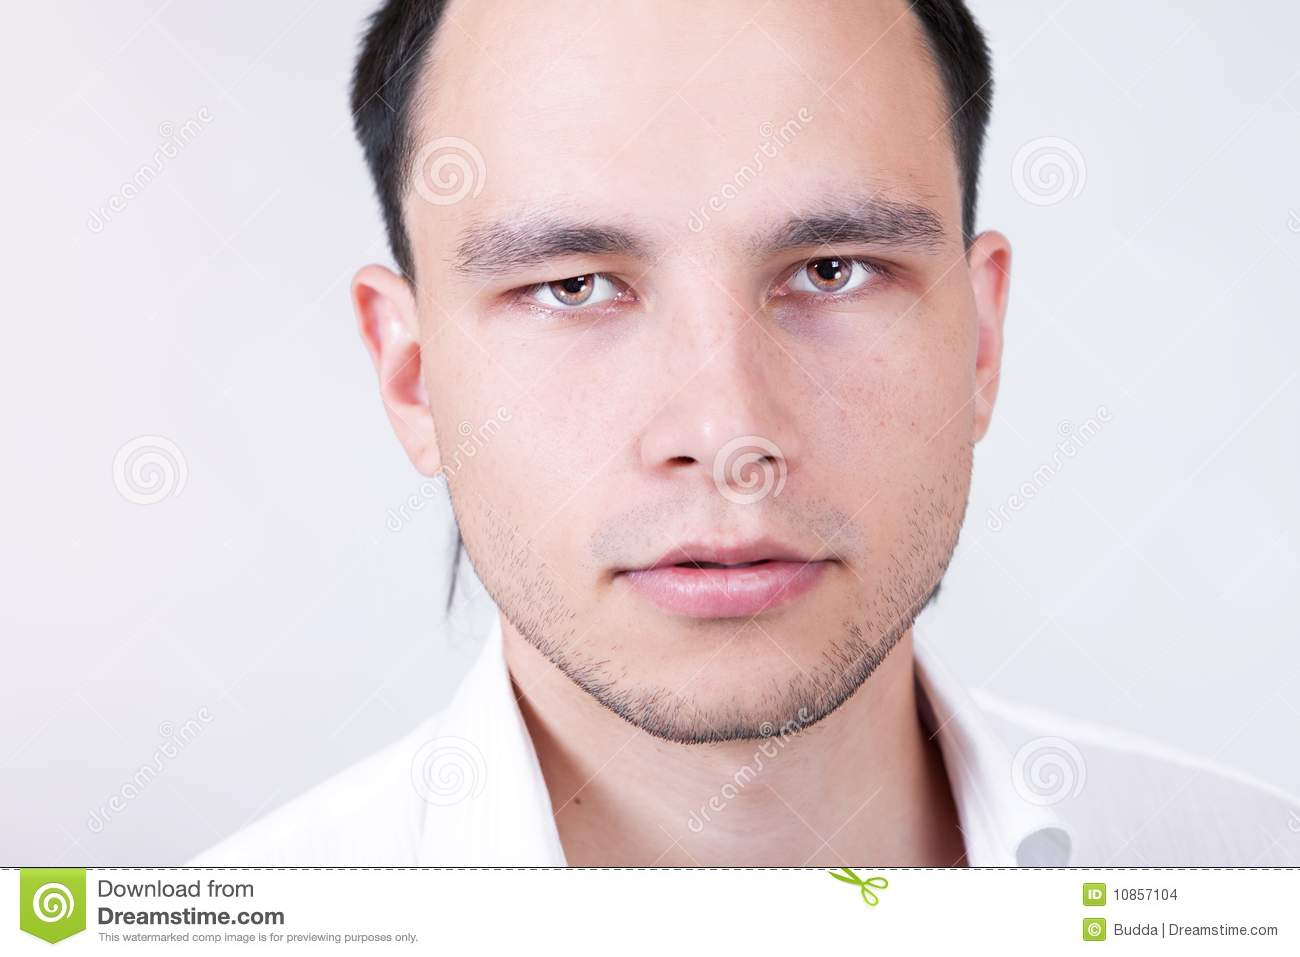 Good Looking Young Man Stock Images - Image: 10857104  Good Looking Young Man